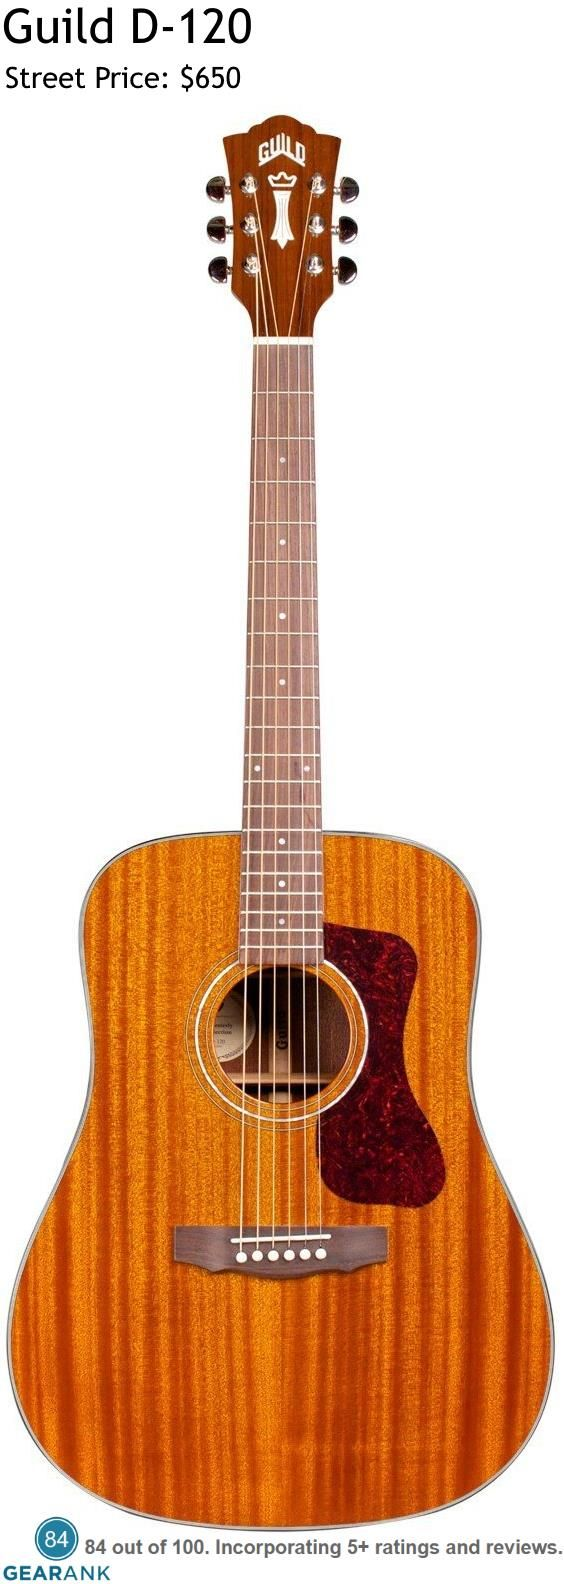 Guild D-120 Acoustic Guitar. Dreadnought size body built with solid African mahogany top, back and sides, the D-120 features an Indian Rosewood fingerboard and bridge, bone nut and saddle, and mother-of-pearl rosette. For a Detailed Guide to Acoustic Guitars see https://www.gearank.com/guides/acoustic-guitars